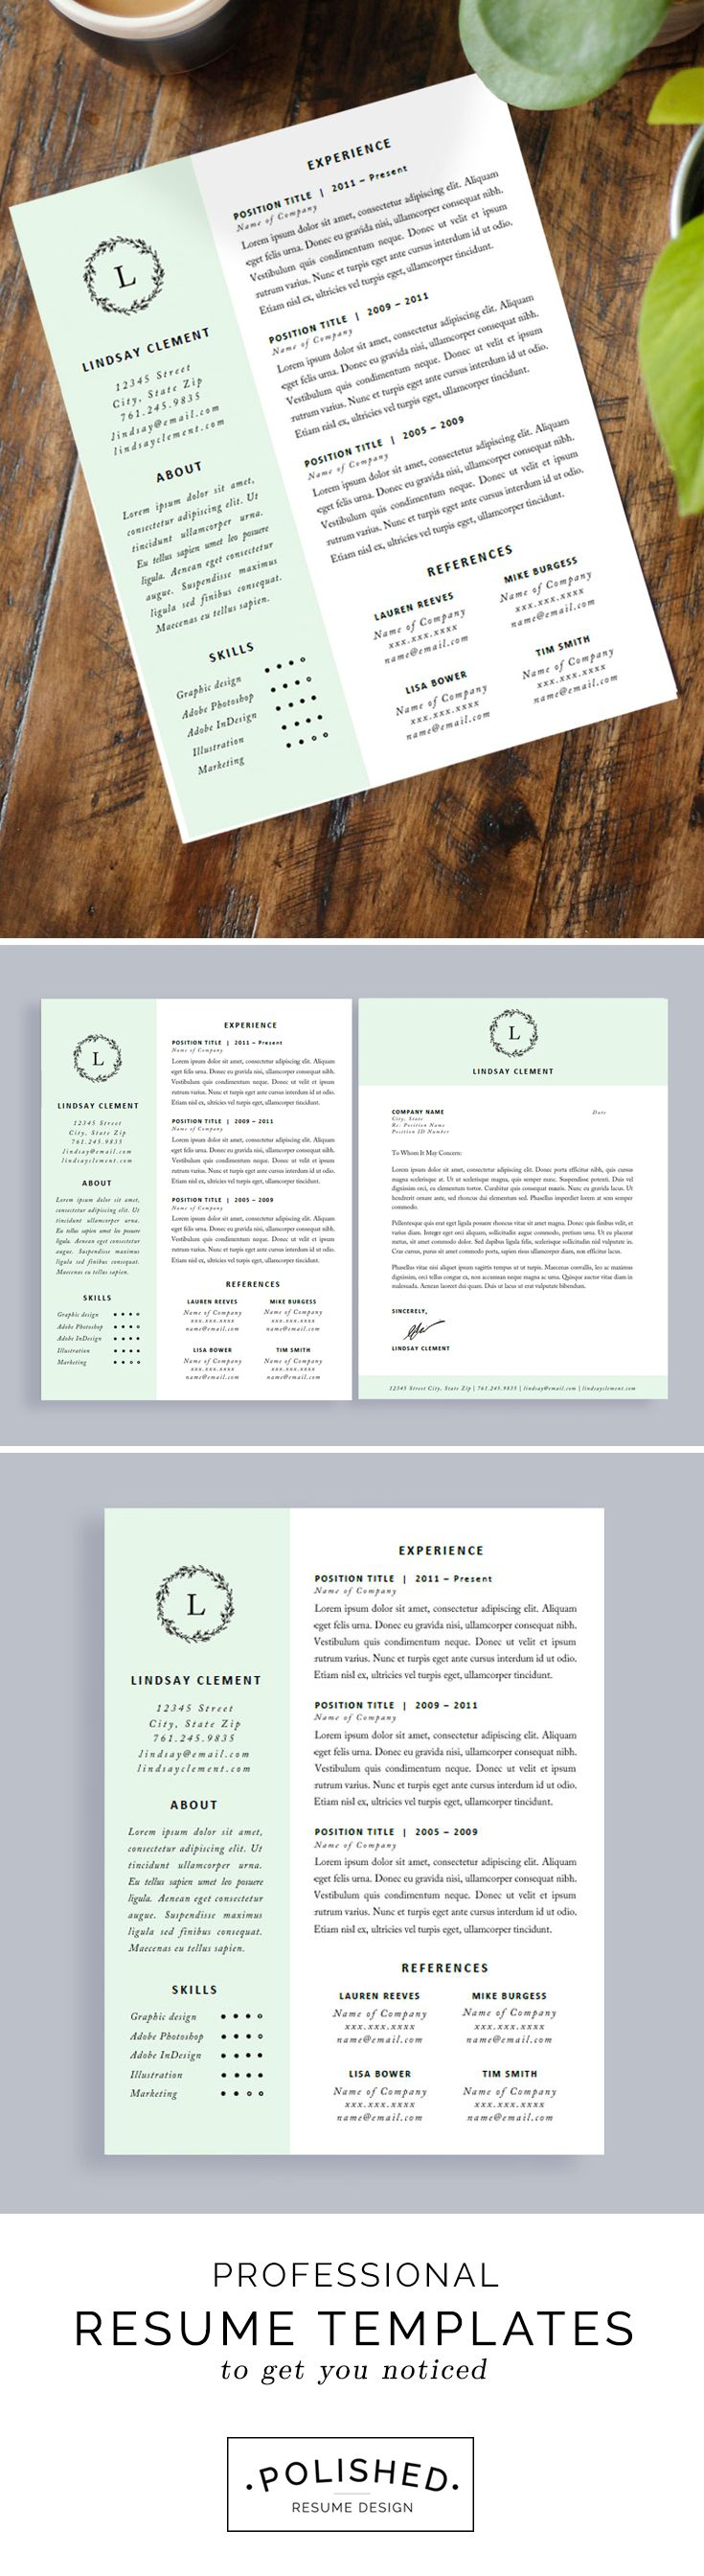 Fine 1 Page Resume Format Download Tall 1 Page Resume Or 2 Regular 1 Year Experience Java Resume Format 11x17 Graph Paper Template Old 15 Year Old Funny Resume Red15 Year Old Student Resume 25  Best Ideas About Professional Resume Design On Pinterest ..